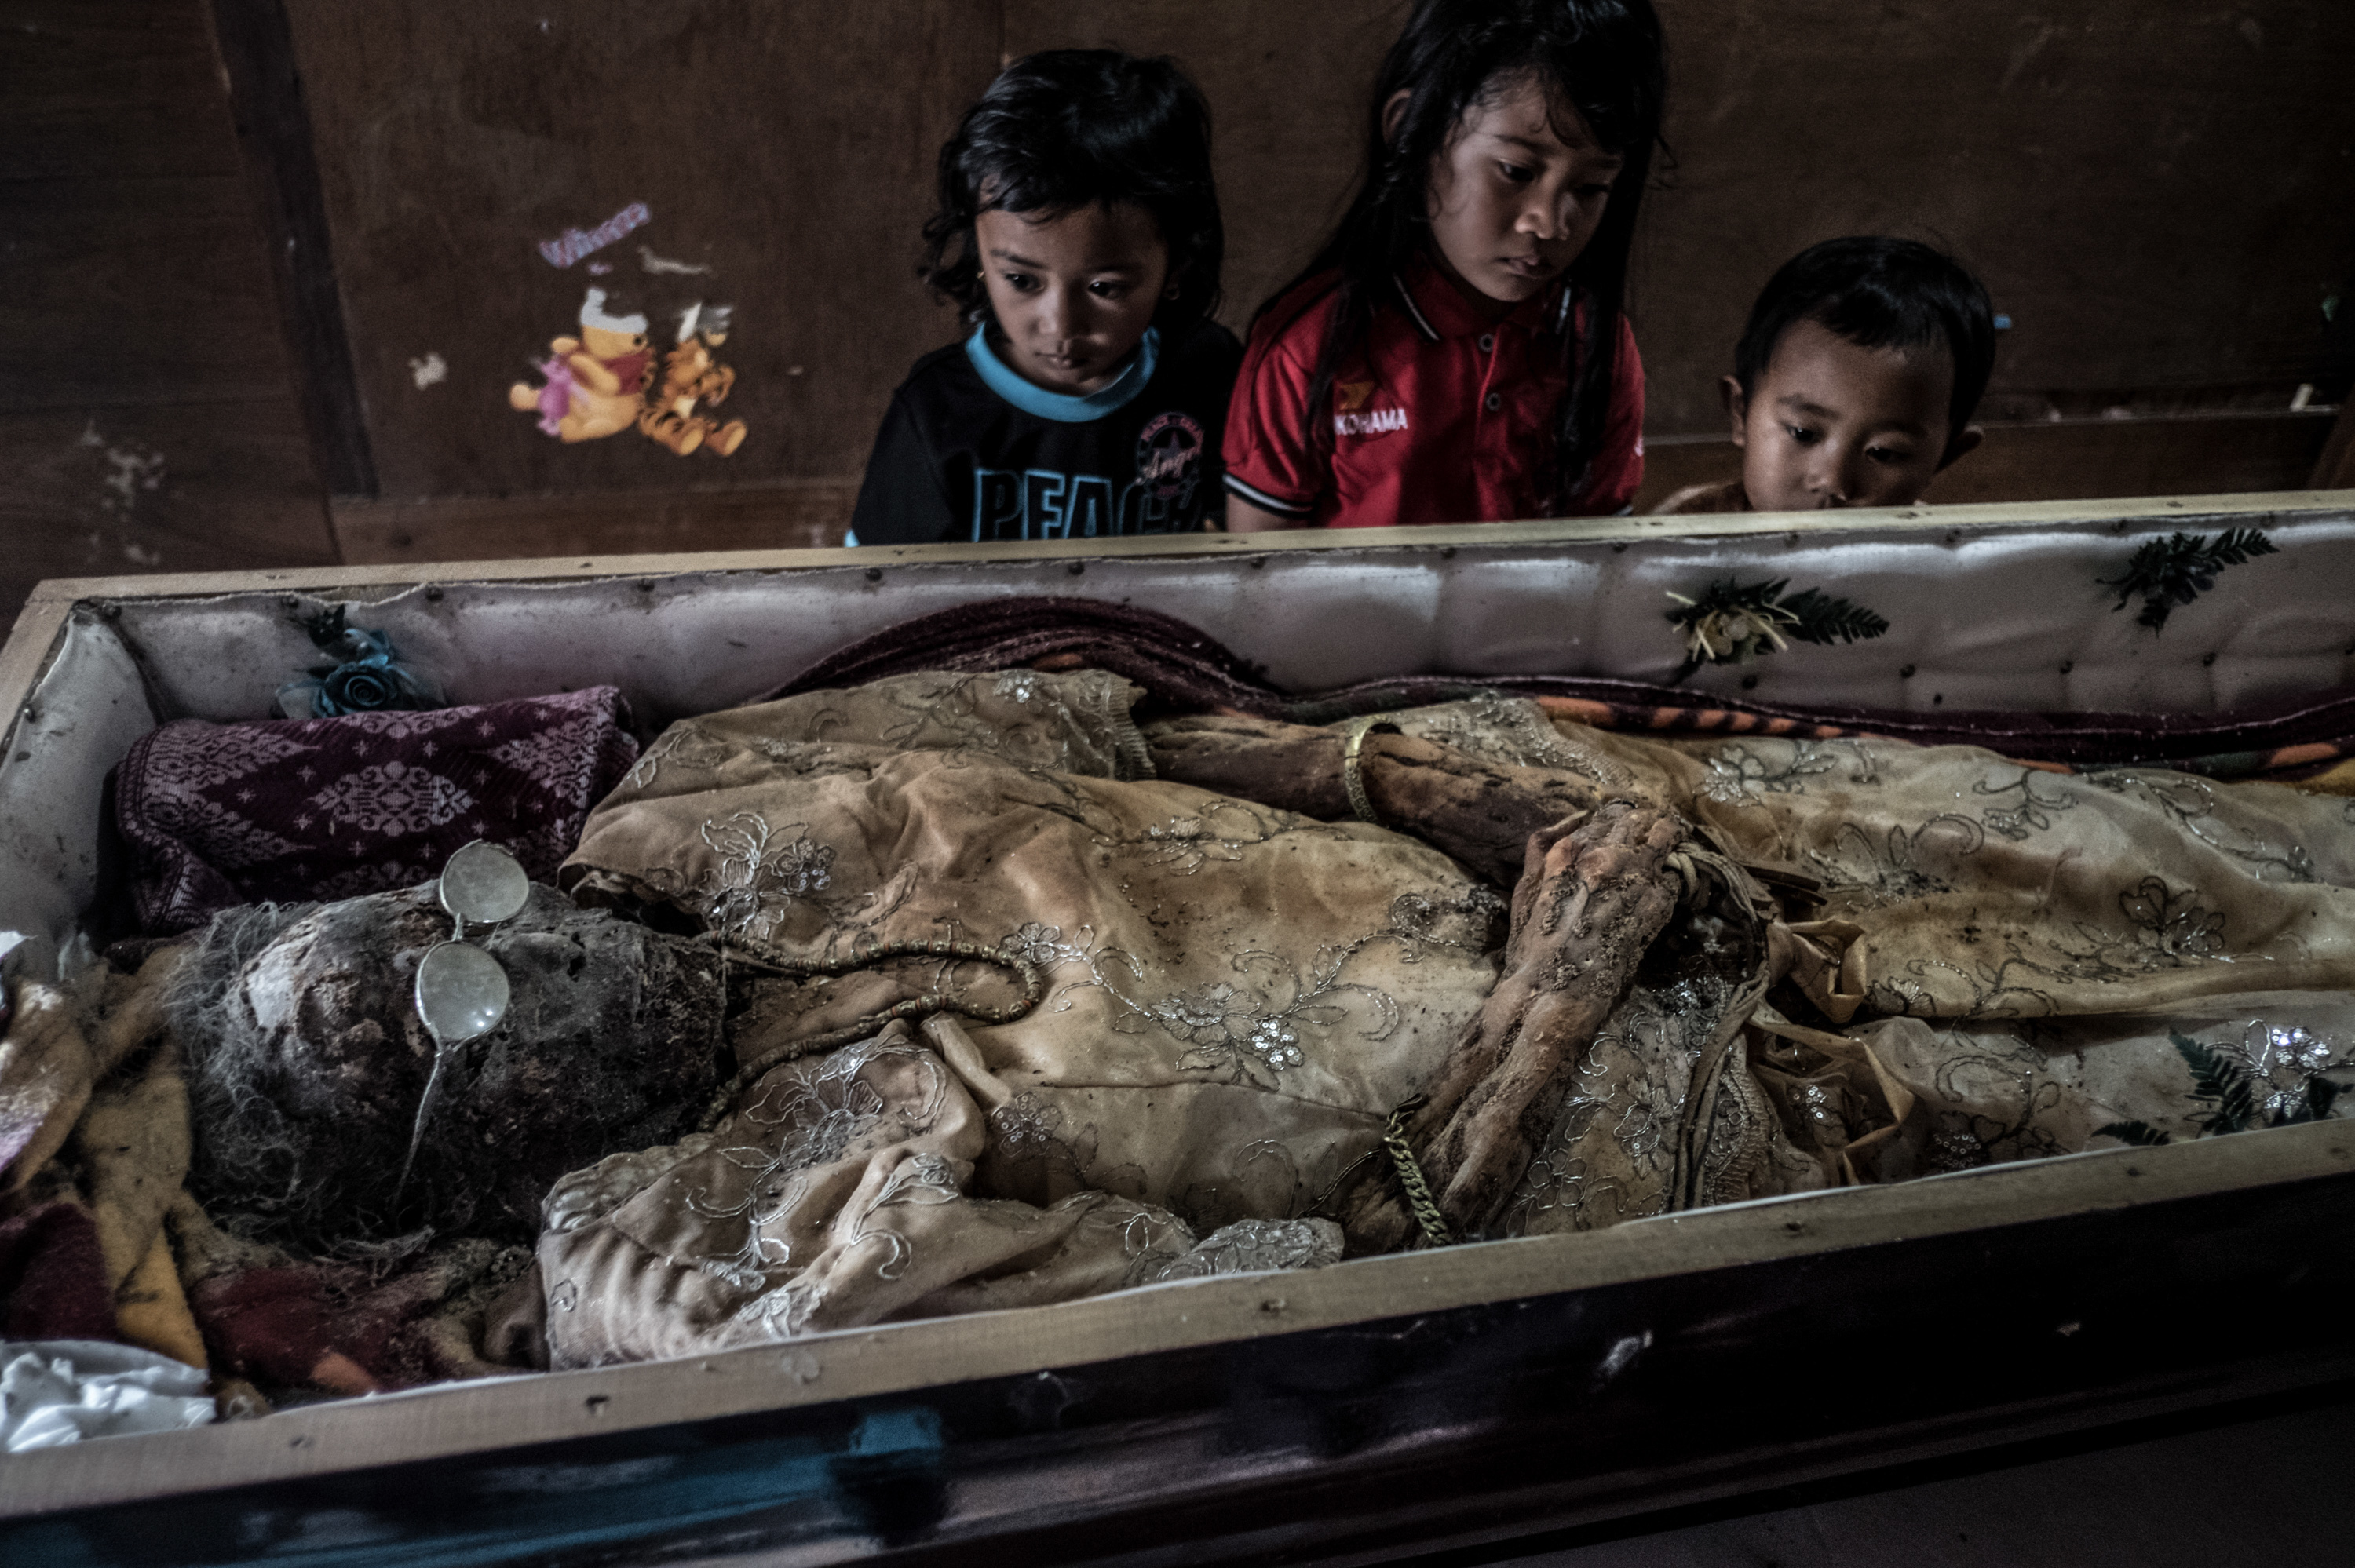 PHOTOS: The Dead Live With Their Loved Ones On This Indonesian Island